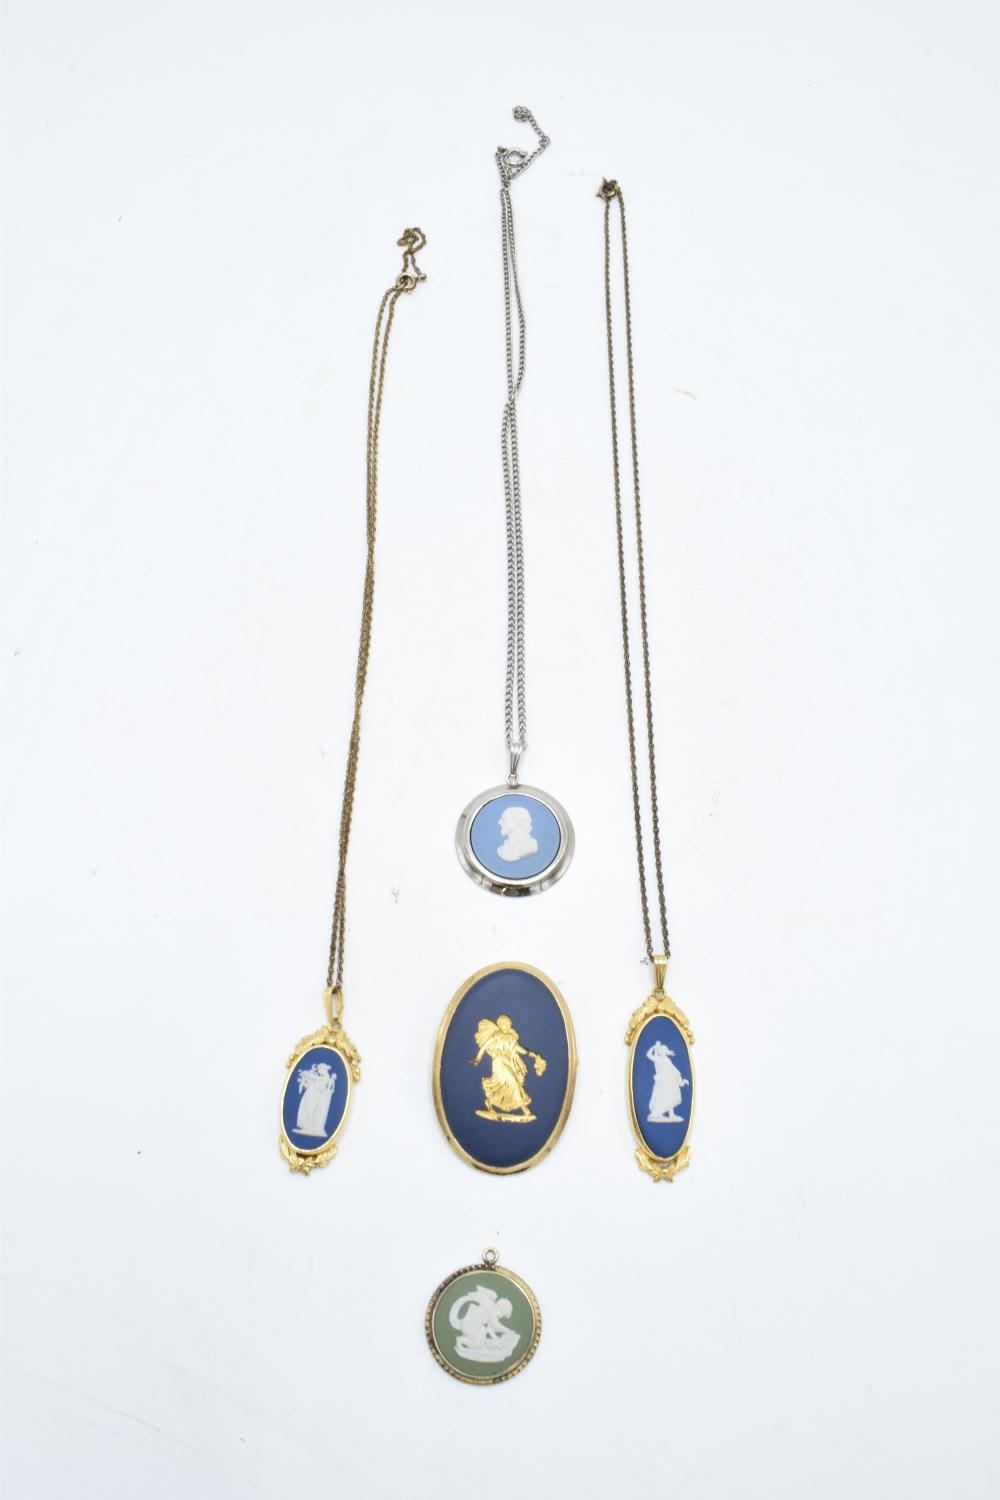 A collection of Wedgwood Jasperware jewellery to include necklaces and pendants with various - Image 2 of 2